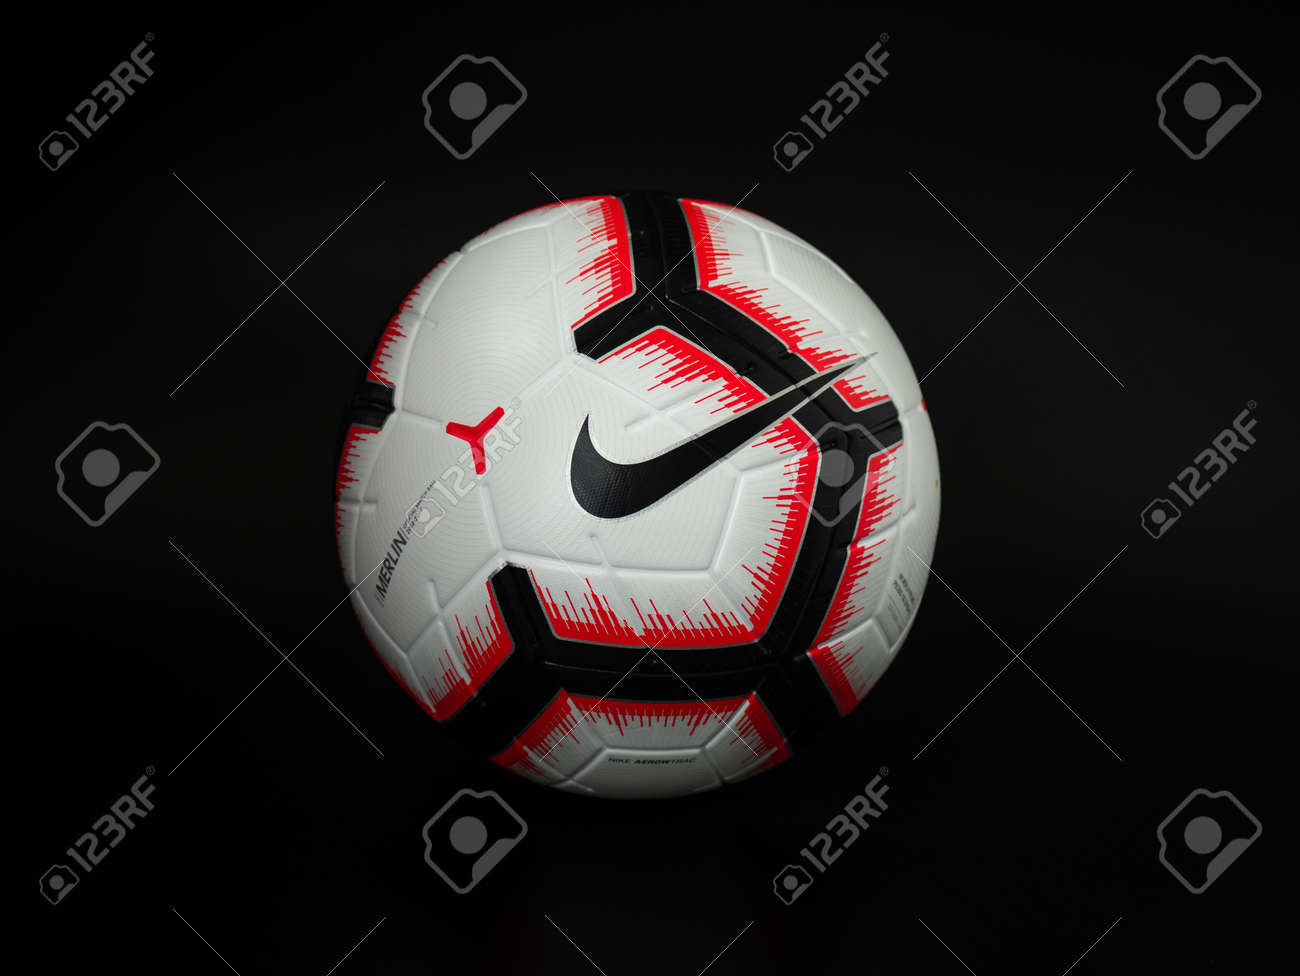 guisante Naufragio Decir la verdad  Soccer Ball On Black Background, Nike Football Stock Photo, Picture And  Royalty Free Image. Image 149224927.